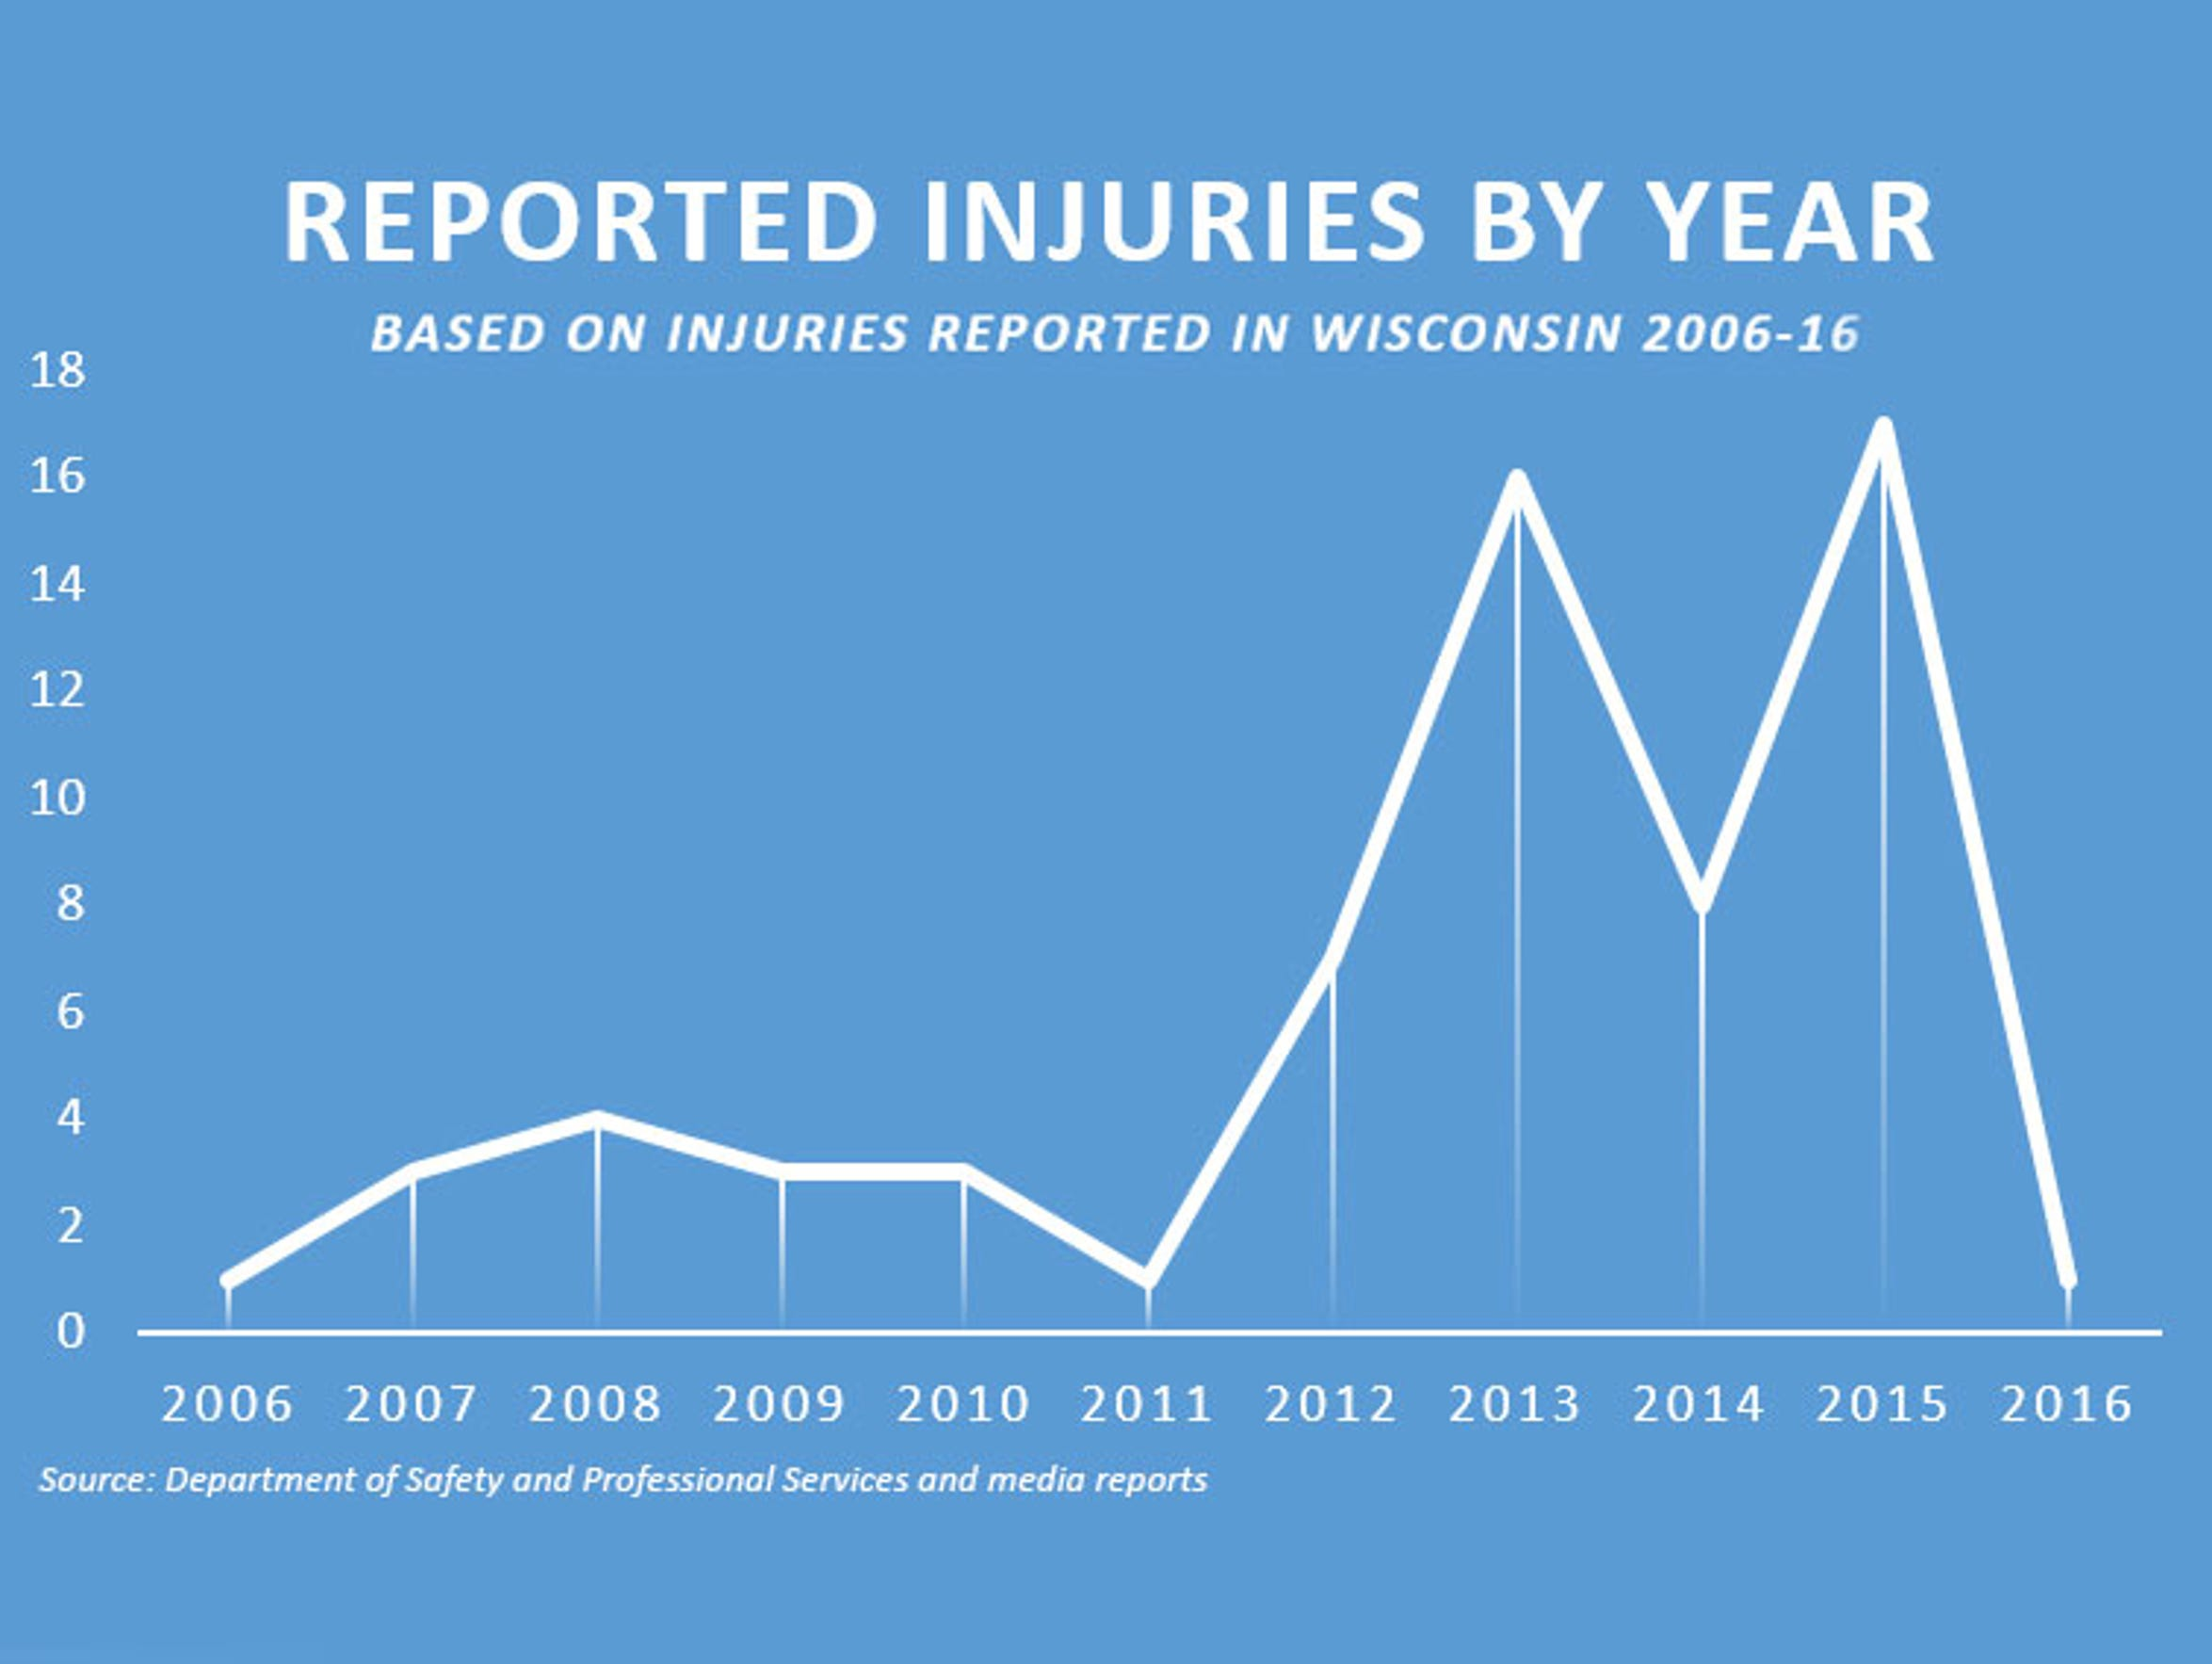 From 2006 to 2011 an average of 2.5 injuries were reported